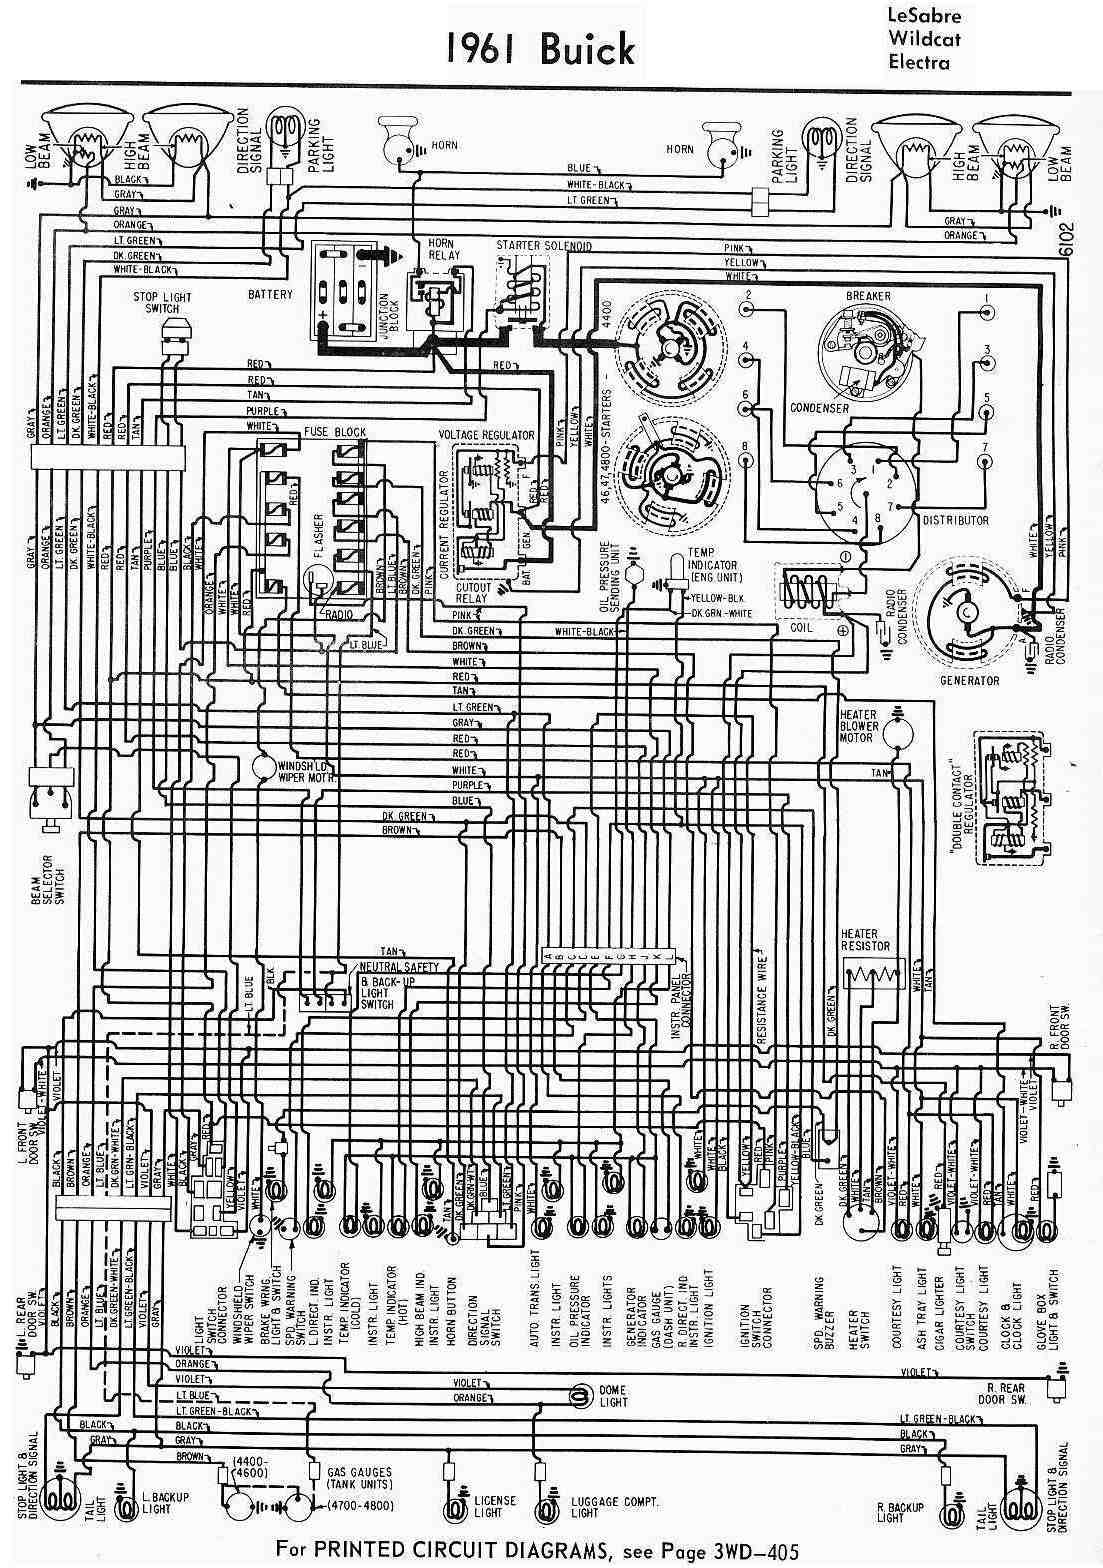 buick century power window wiring wiring diagrambuick century power window wiring [ 1103 x 1568 Pixel ]